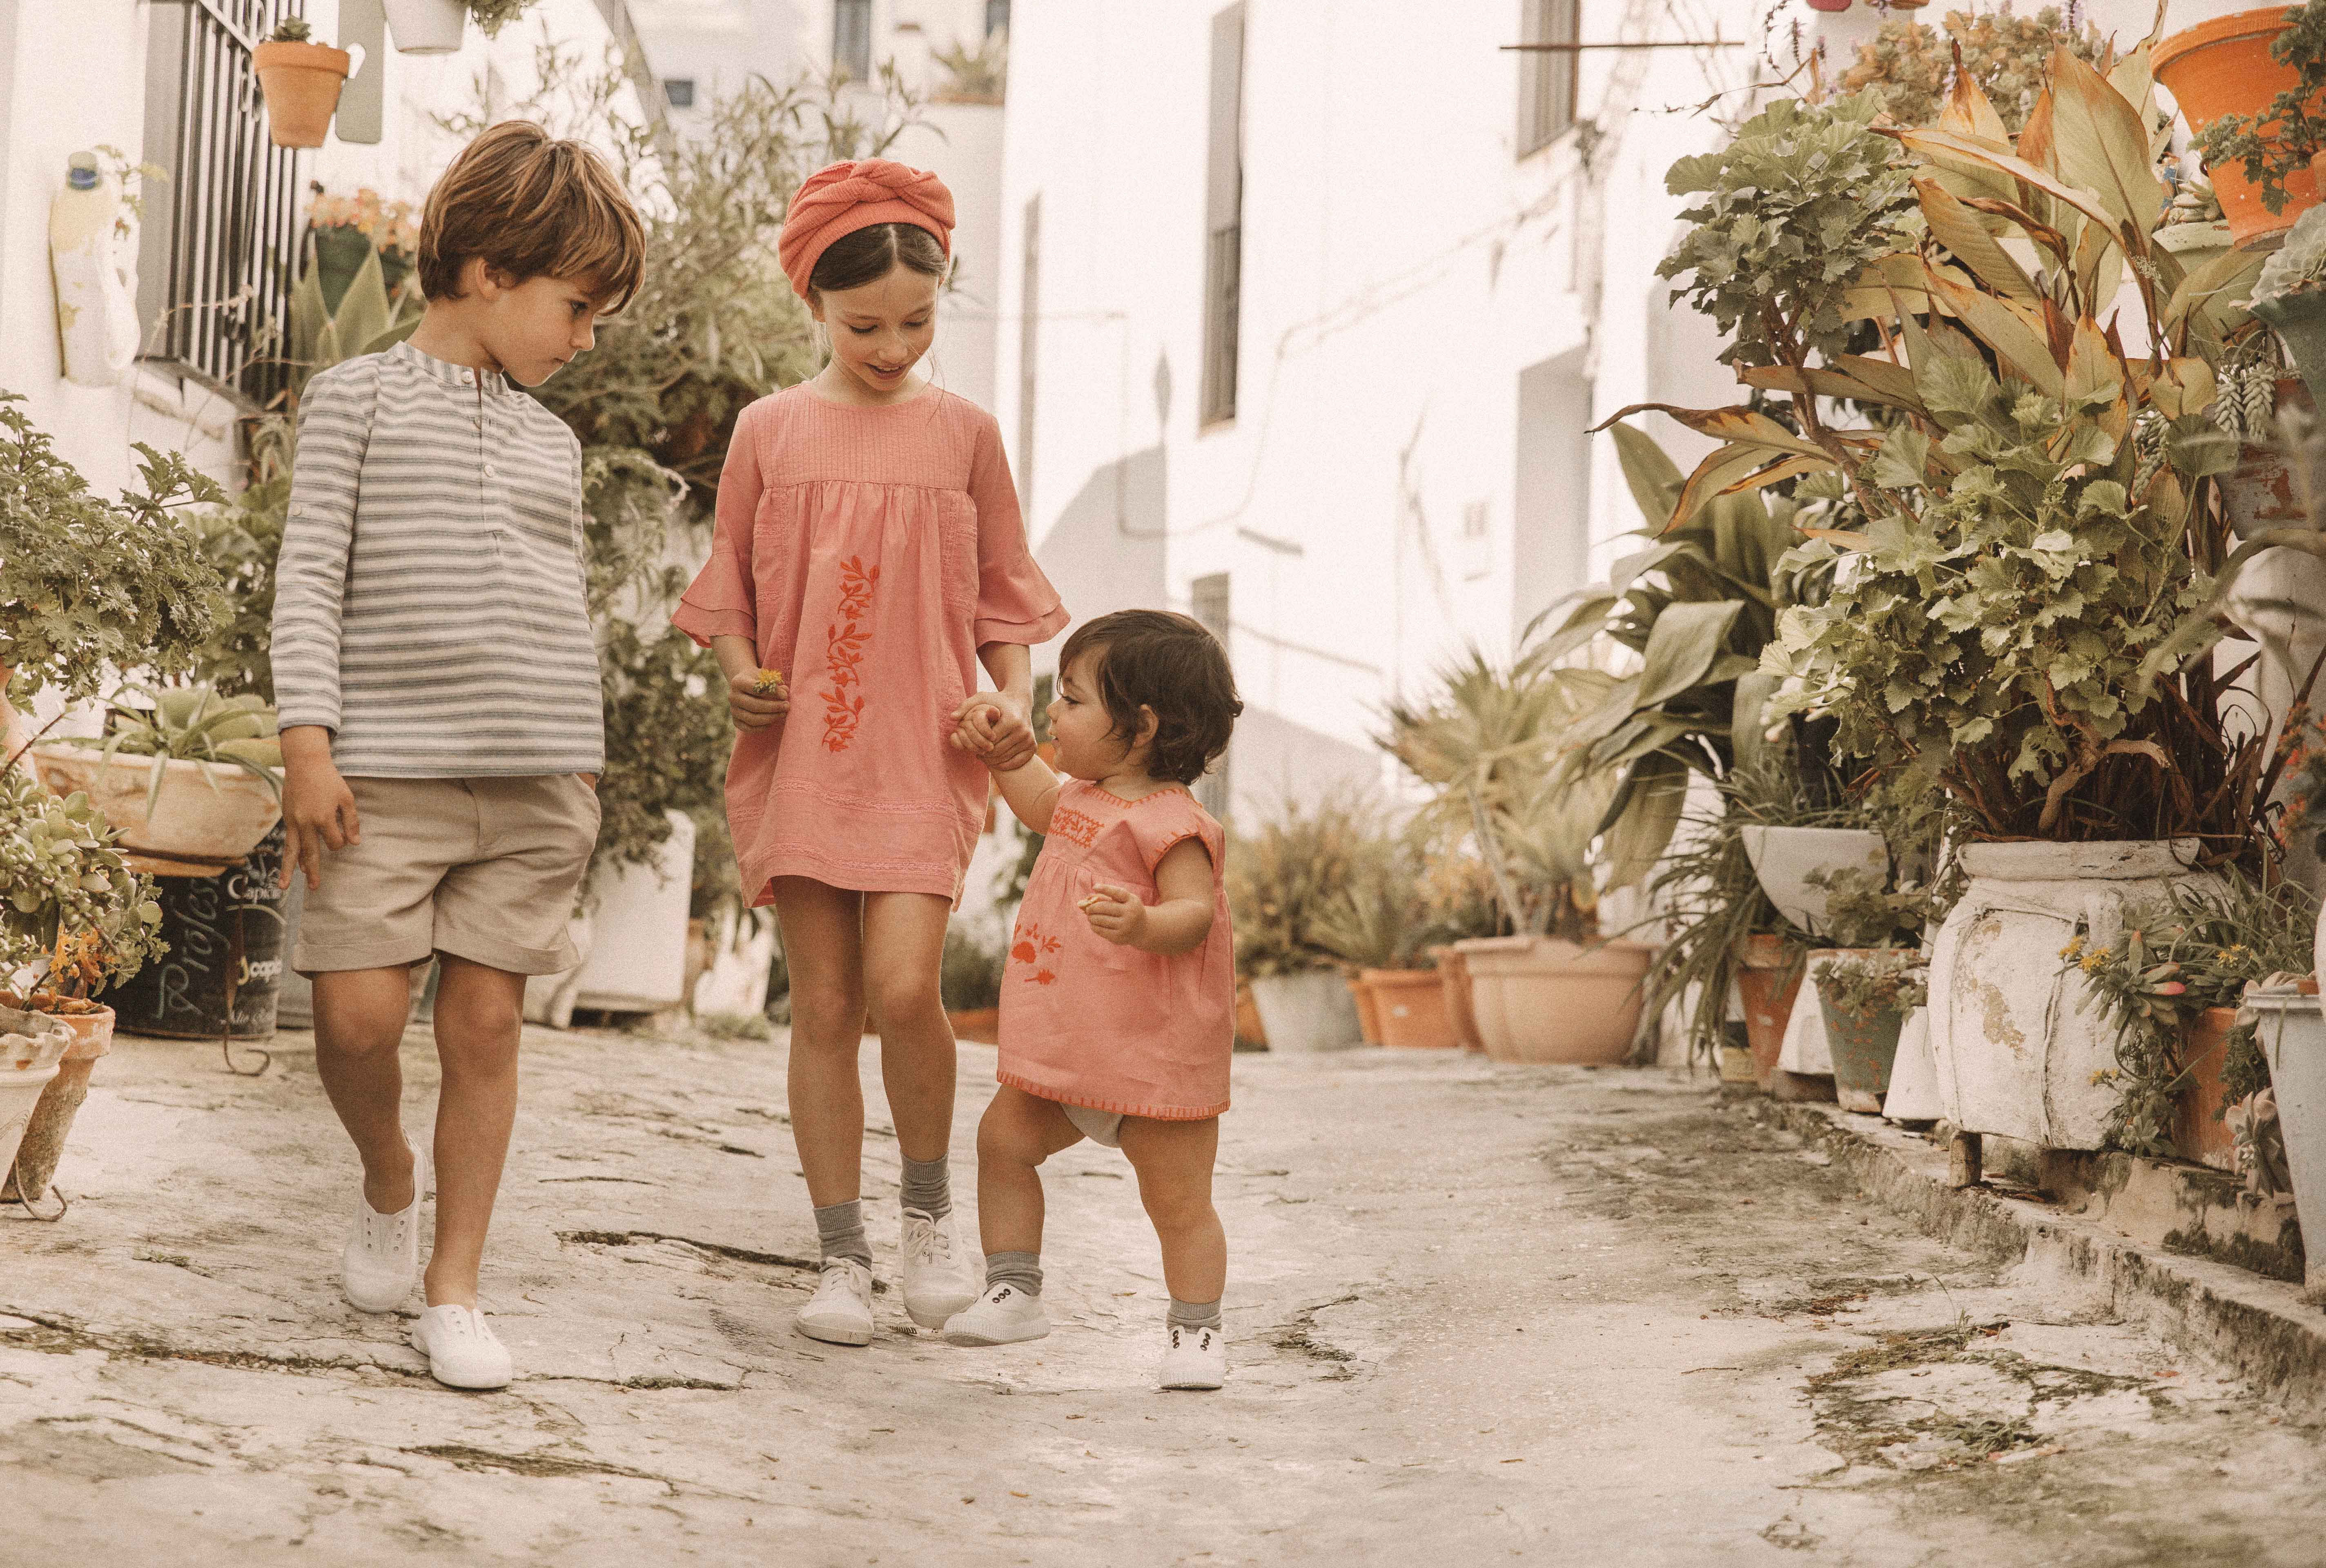 The New Spanish Childrenswear Brand You Need To Know